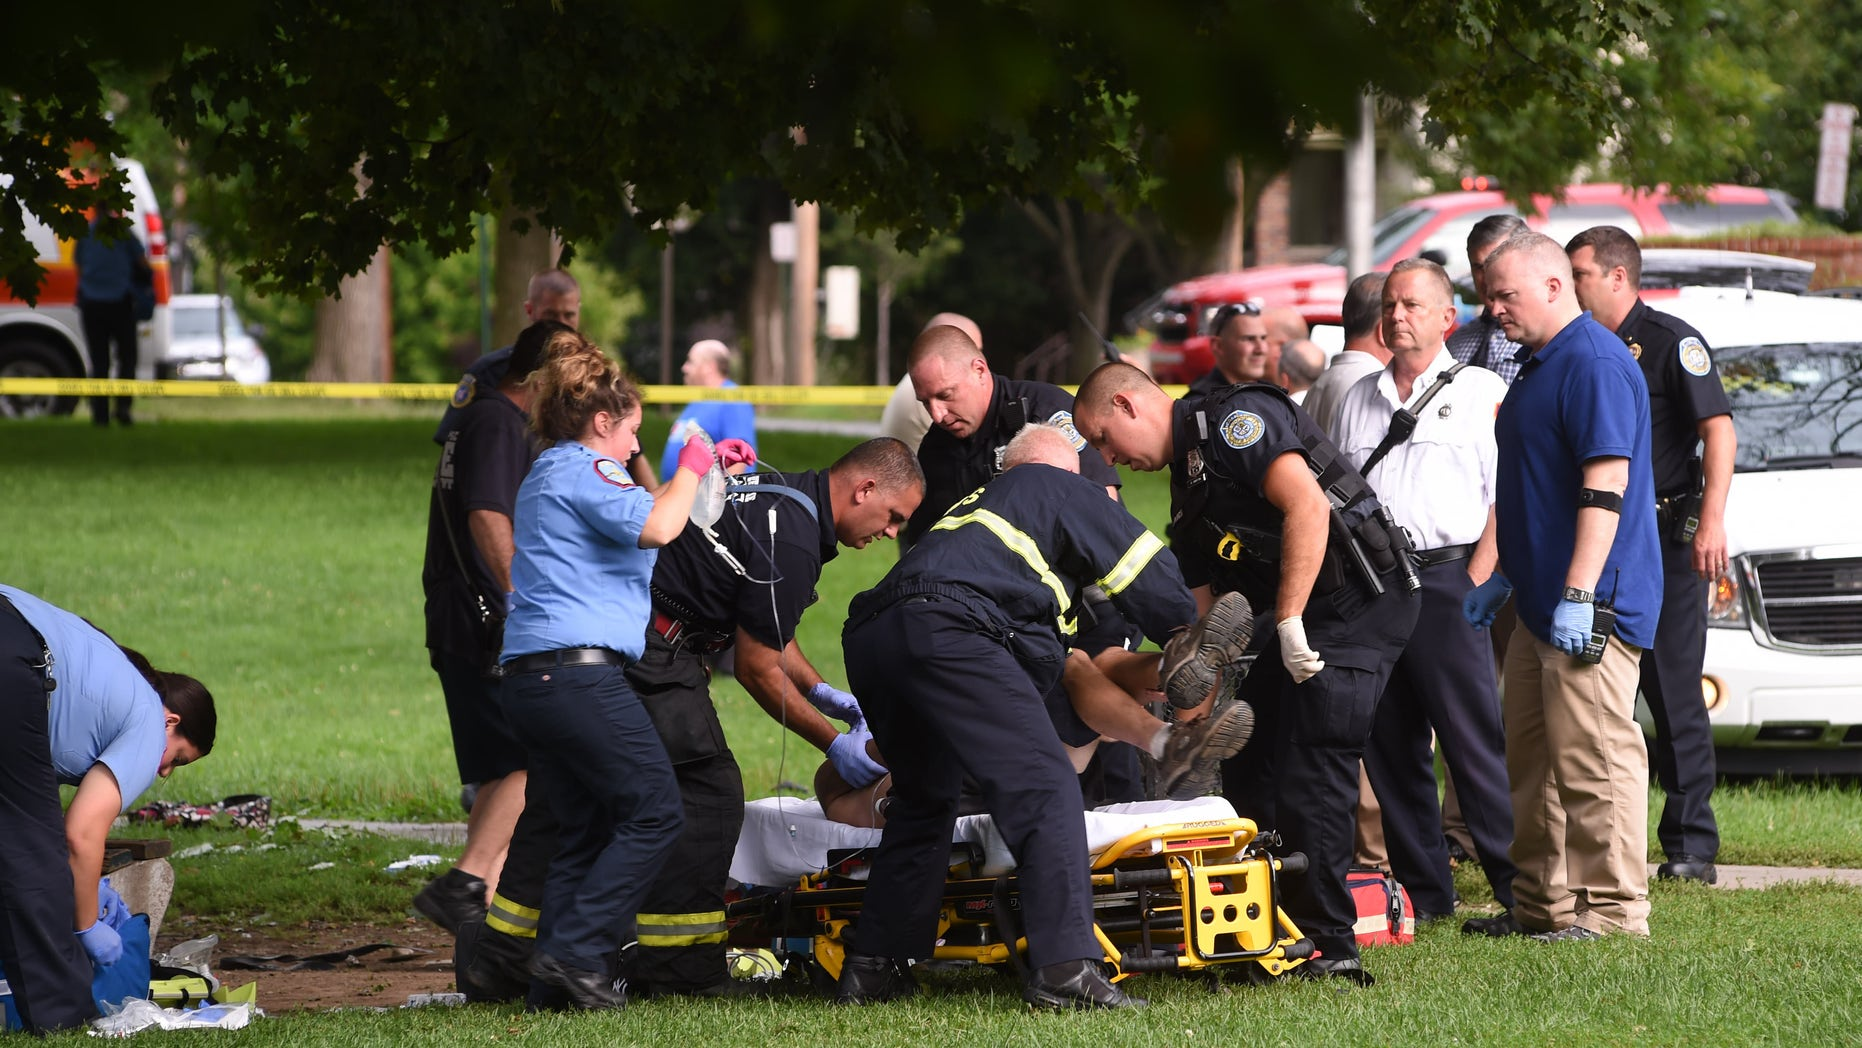 Emergency personnel at Mansion Square Park in Poughkeepsie on Friday.